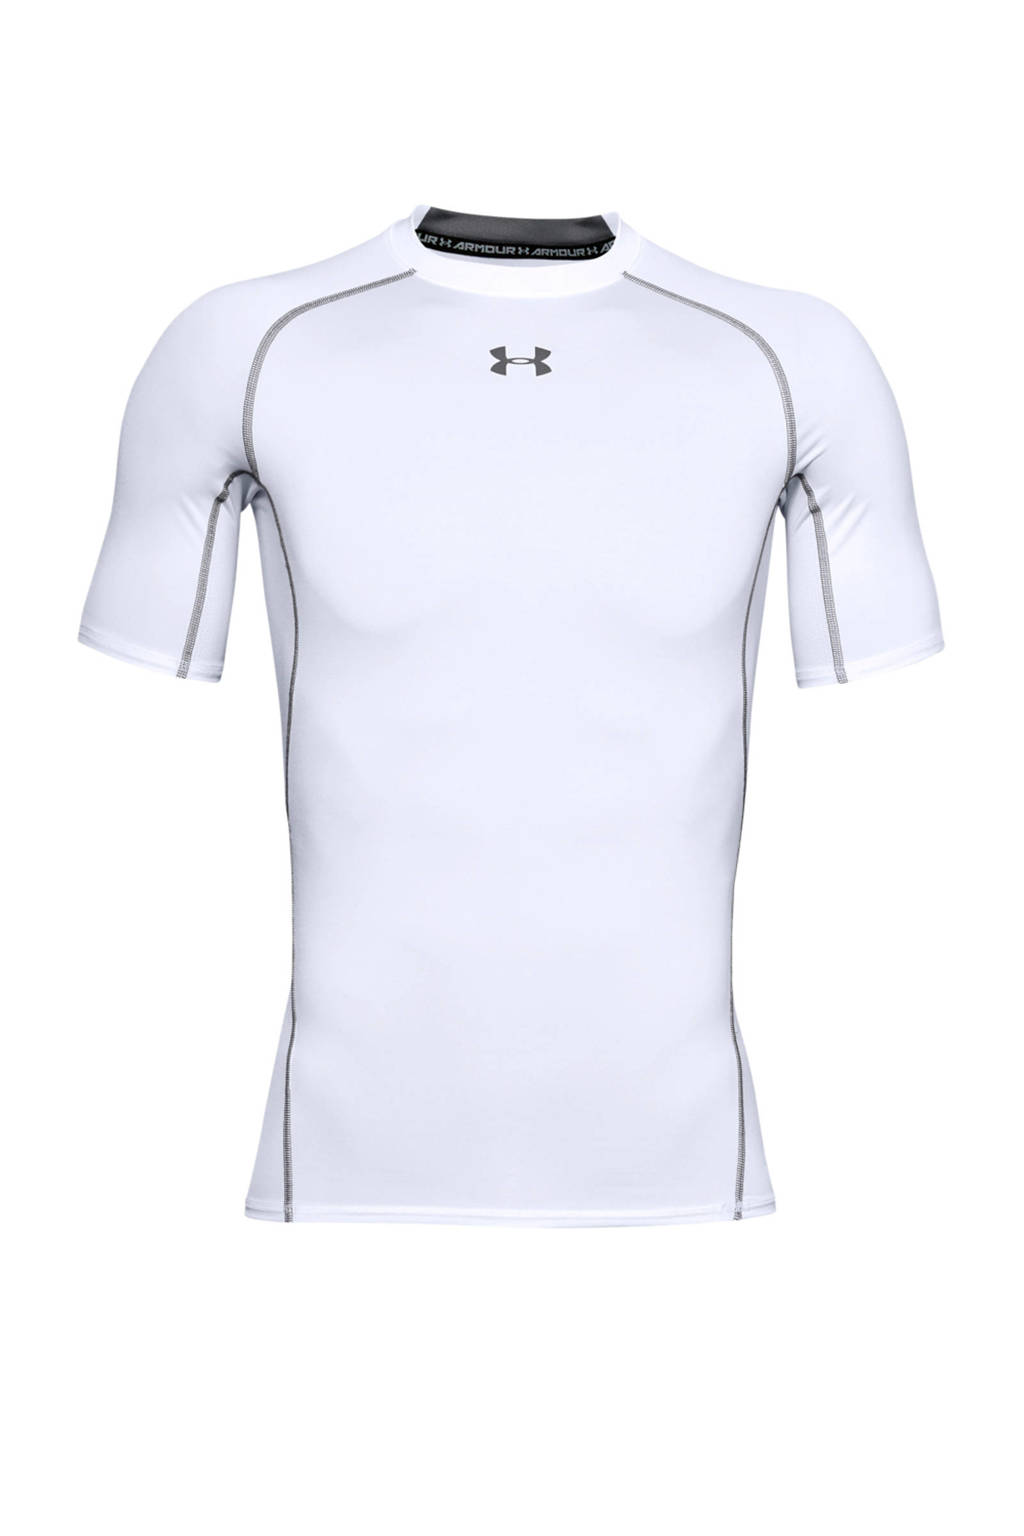 Under Armour   sport T-shirt, Wit/grijs